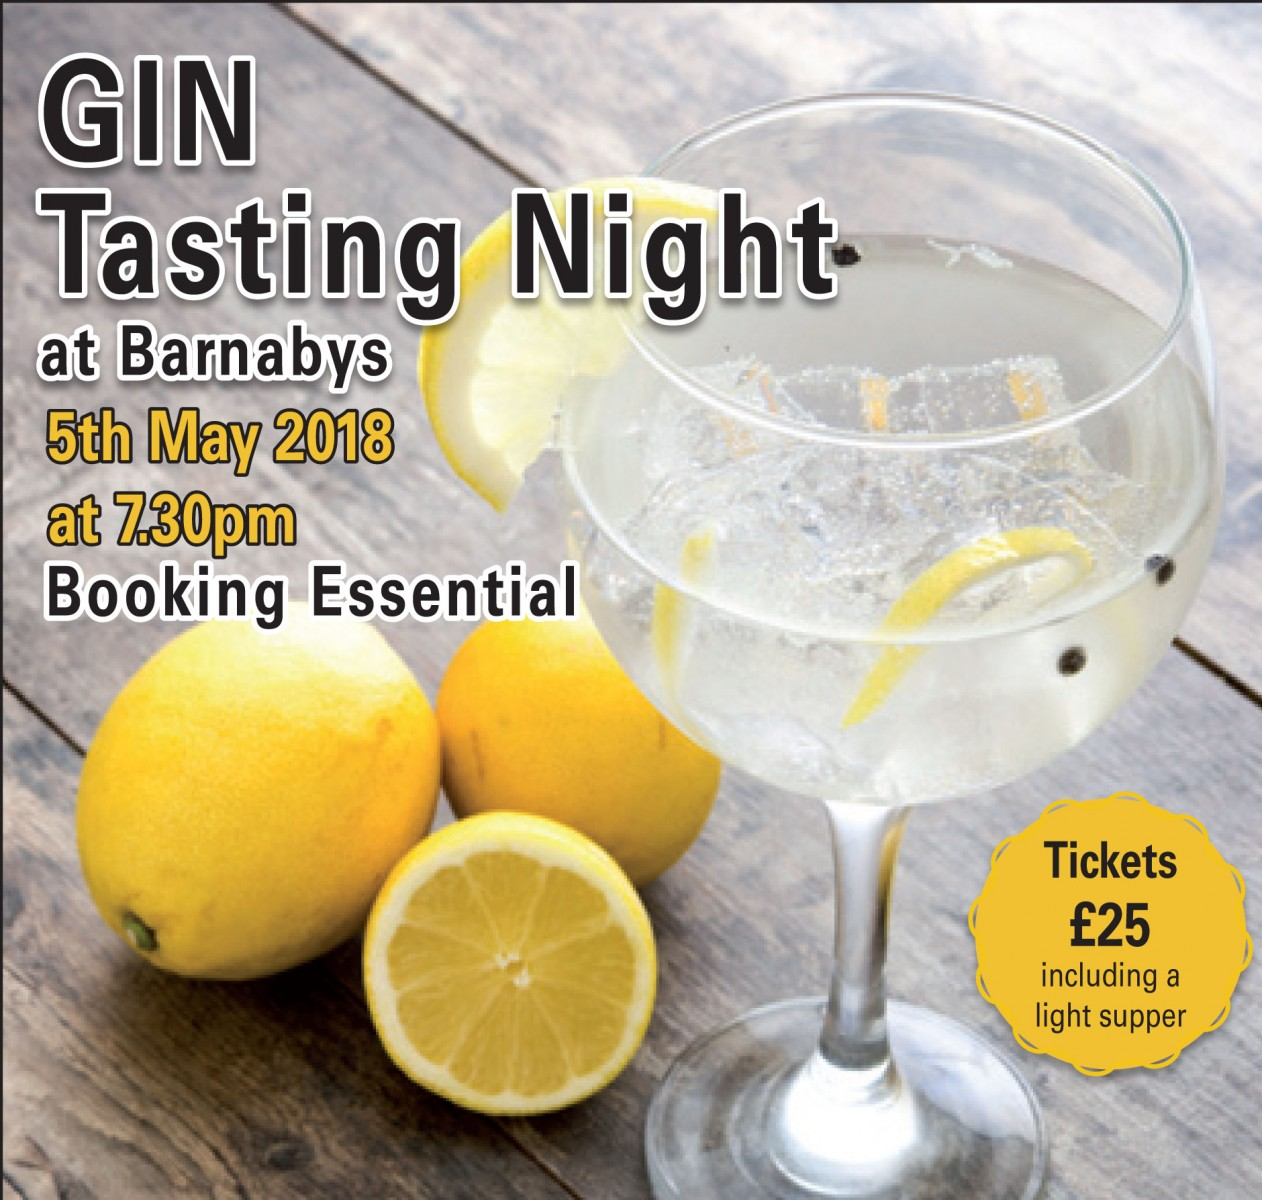 Gin Tasting Night at Barnabys!